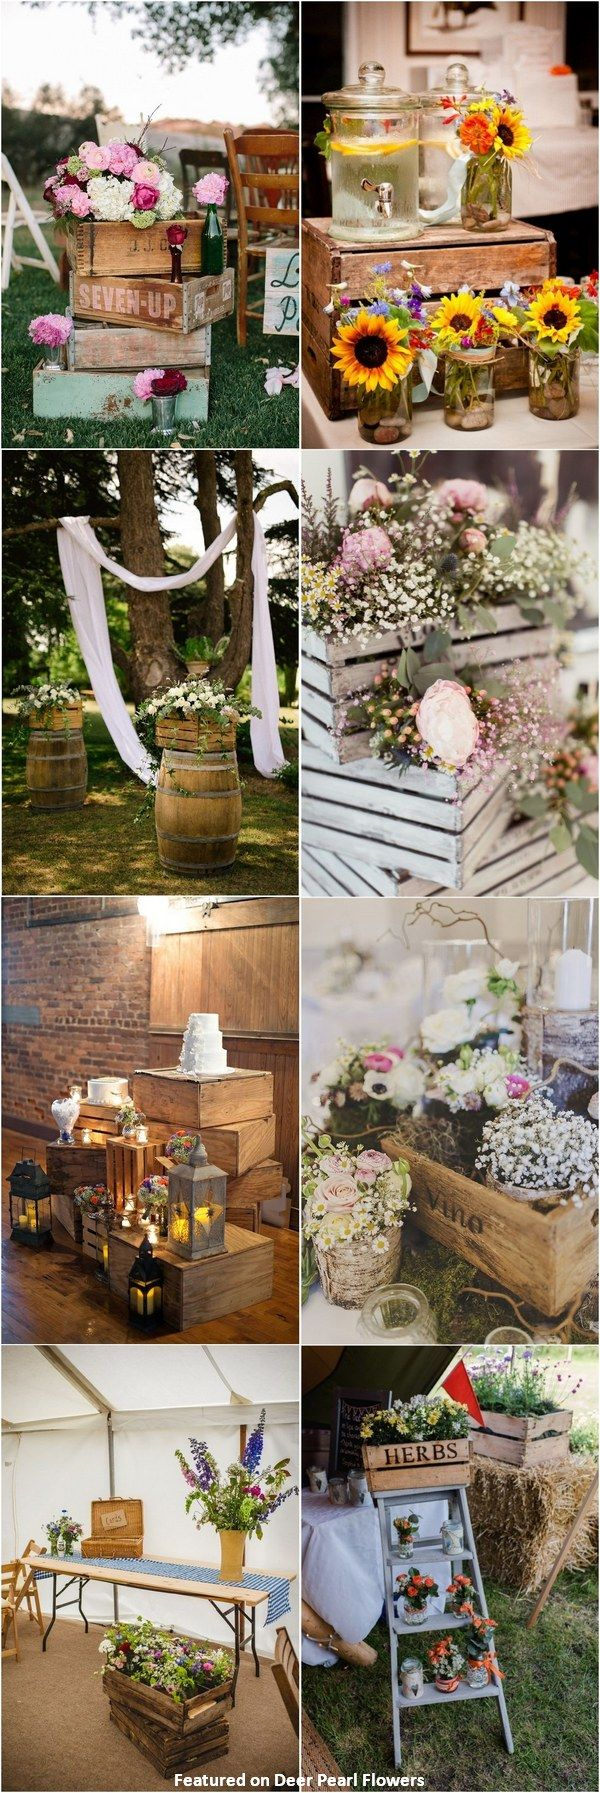 ideas about Jewish Dating on Pinterest   Work ecards  Bad     rustic country wooden crate wedding decor ideas   http   www deerpearlflowers